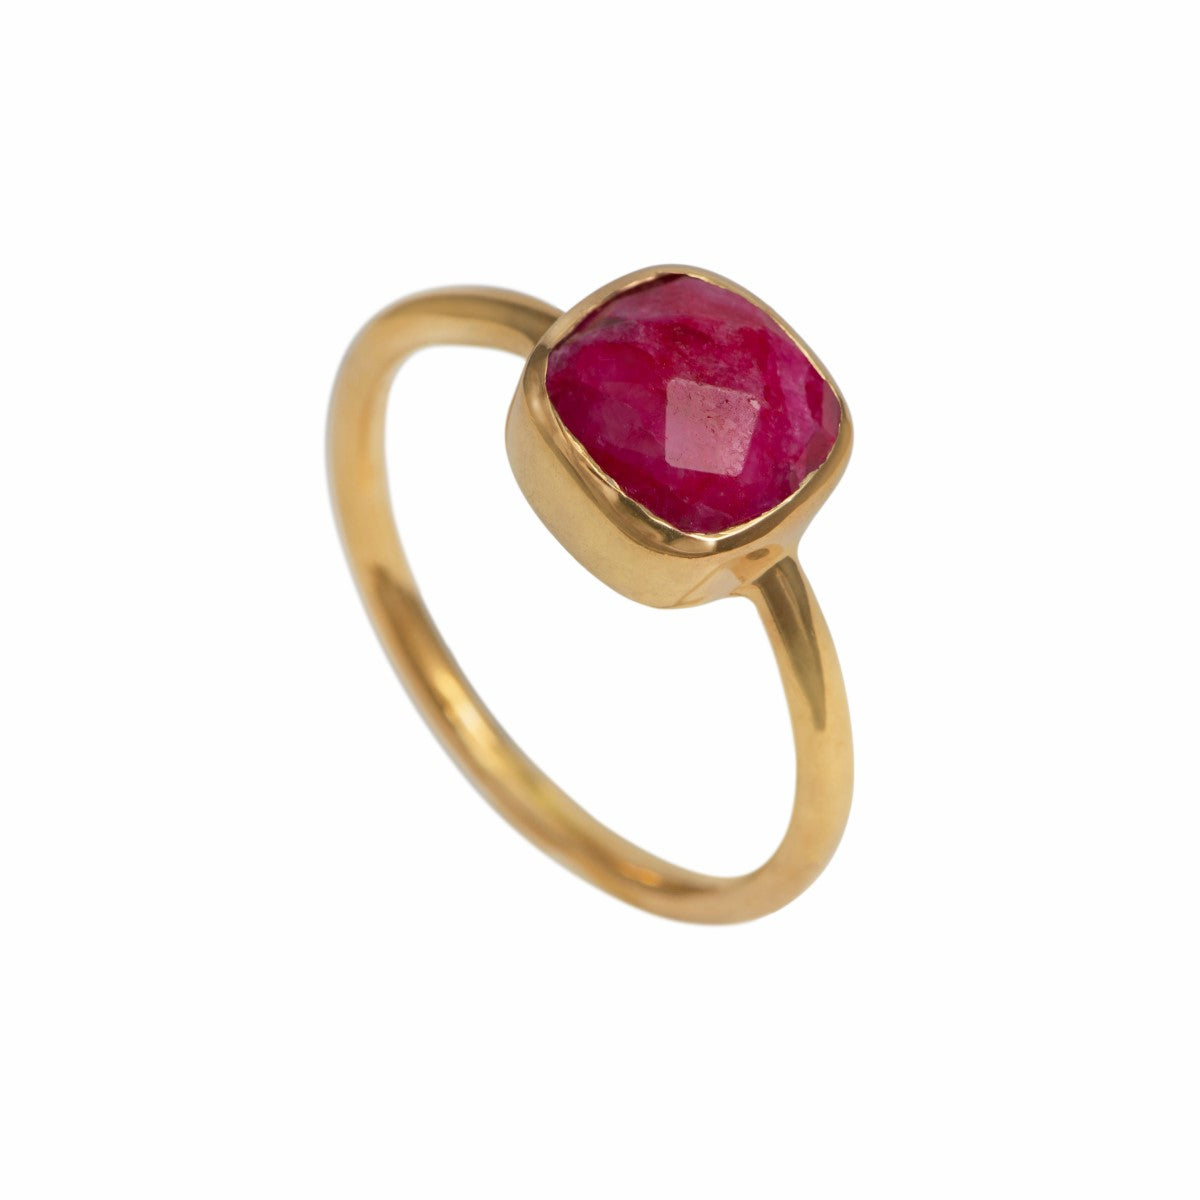 Faceted Square Cut Natural Gemstone Gold Plated Sterling Silver Solitaire Ring - Ruby Quartz